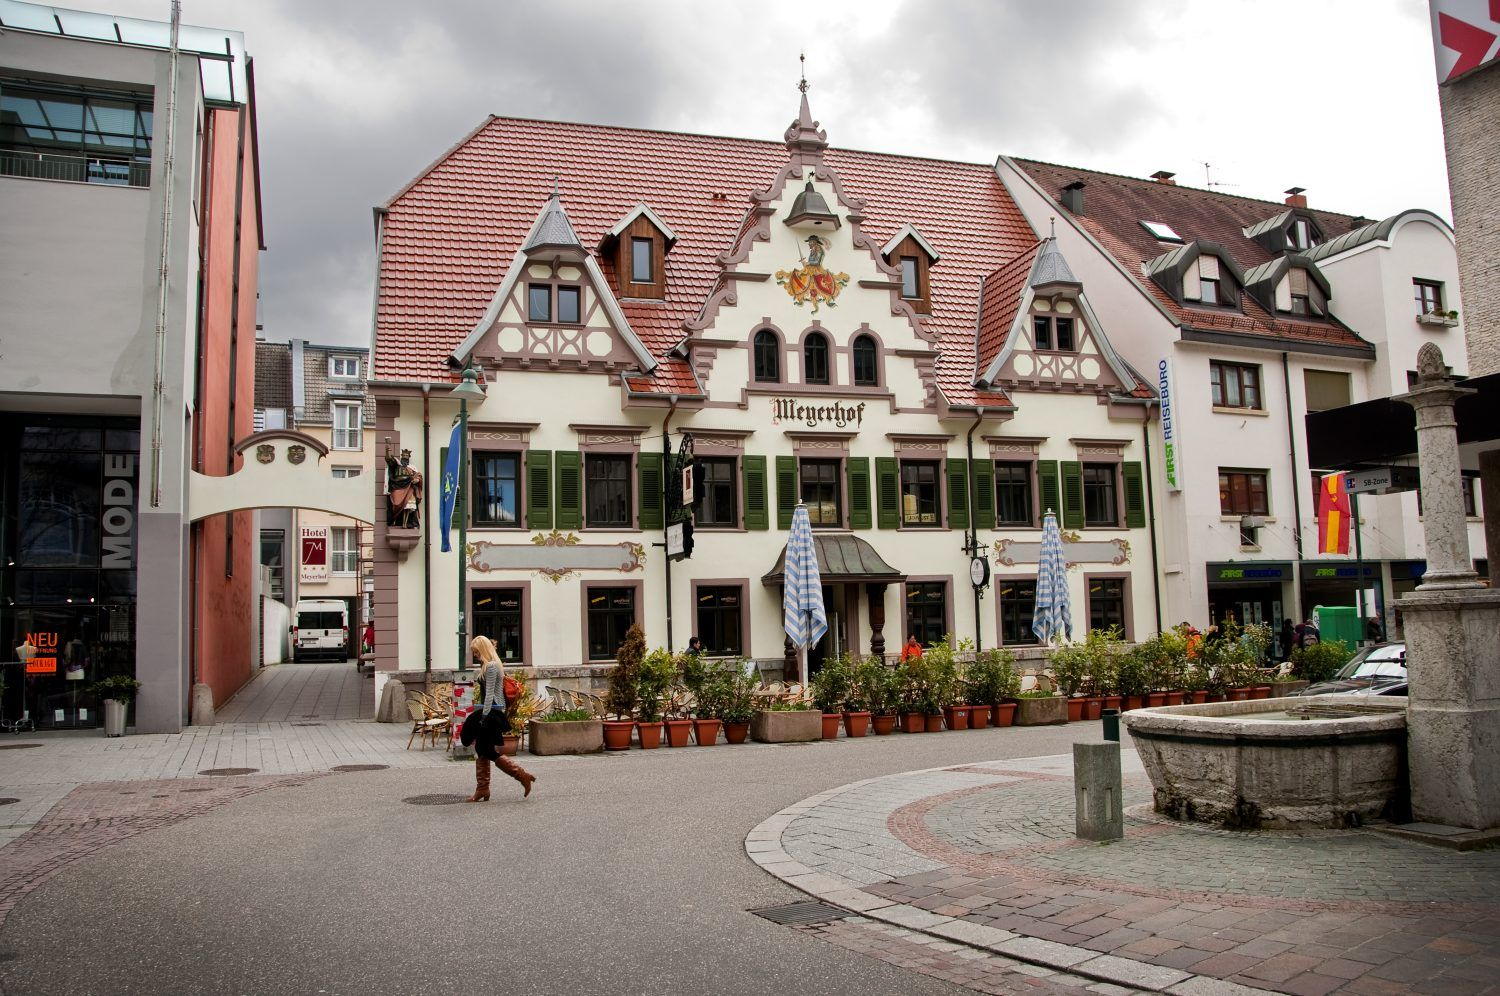 Lörrach, Baden-Württenberg, Germany (stayed in an apartment at this place, back in '78).